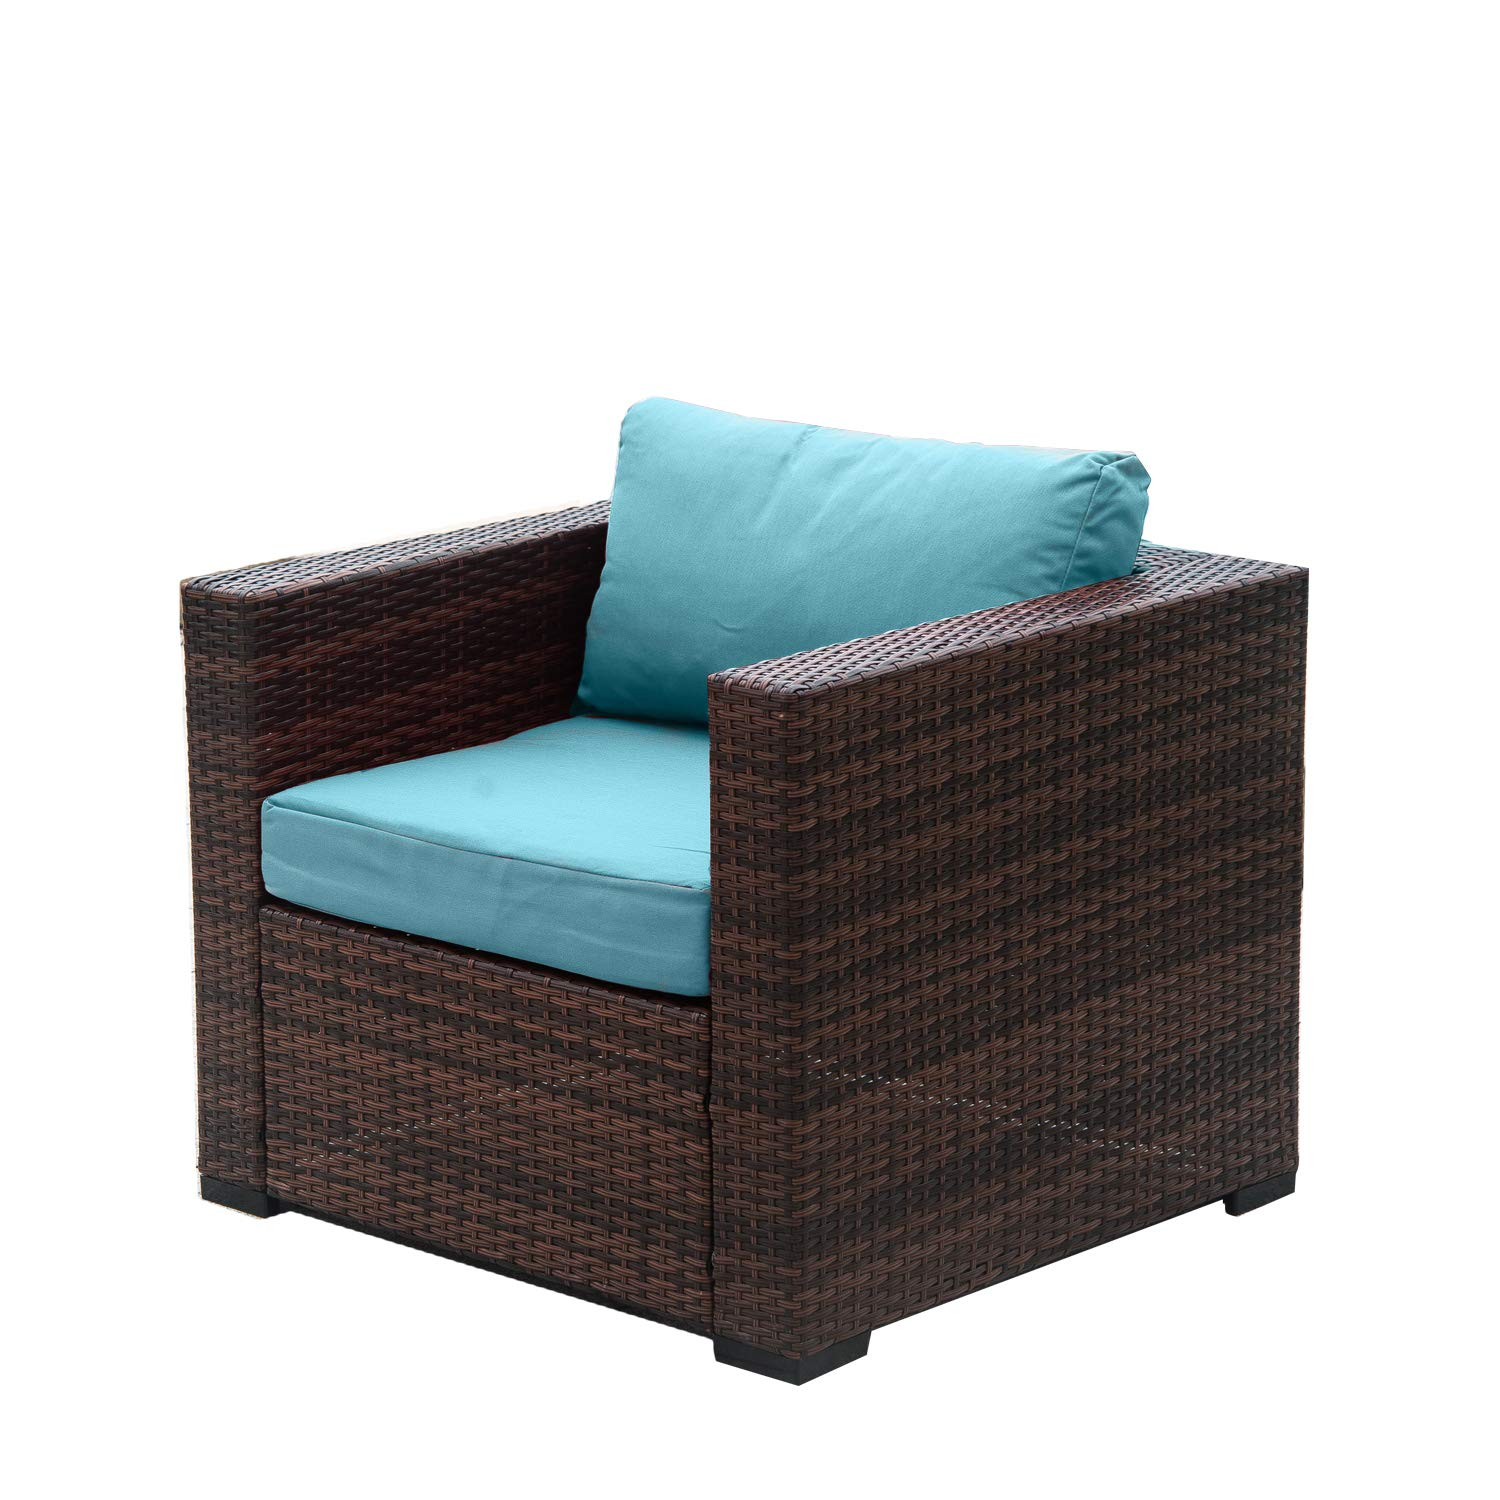 Auro patio wicker single chair with water resistant blue olefin cushion outdoor furniture all weather resin rattan arm chairpoolsideporchgarden 1